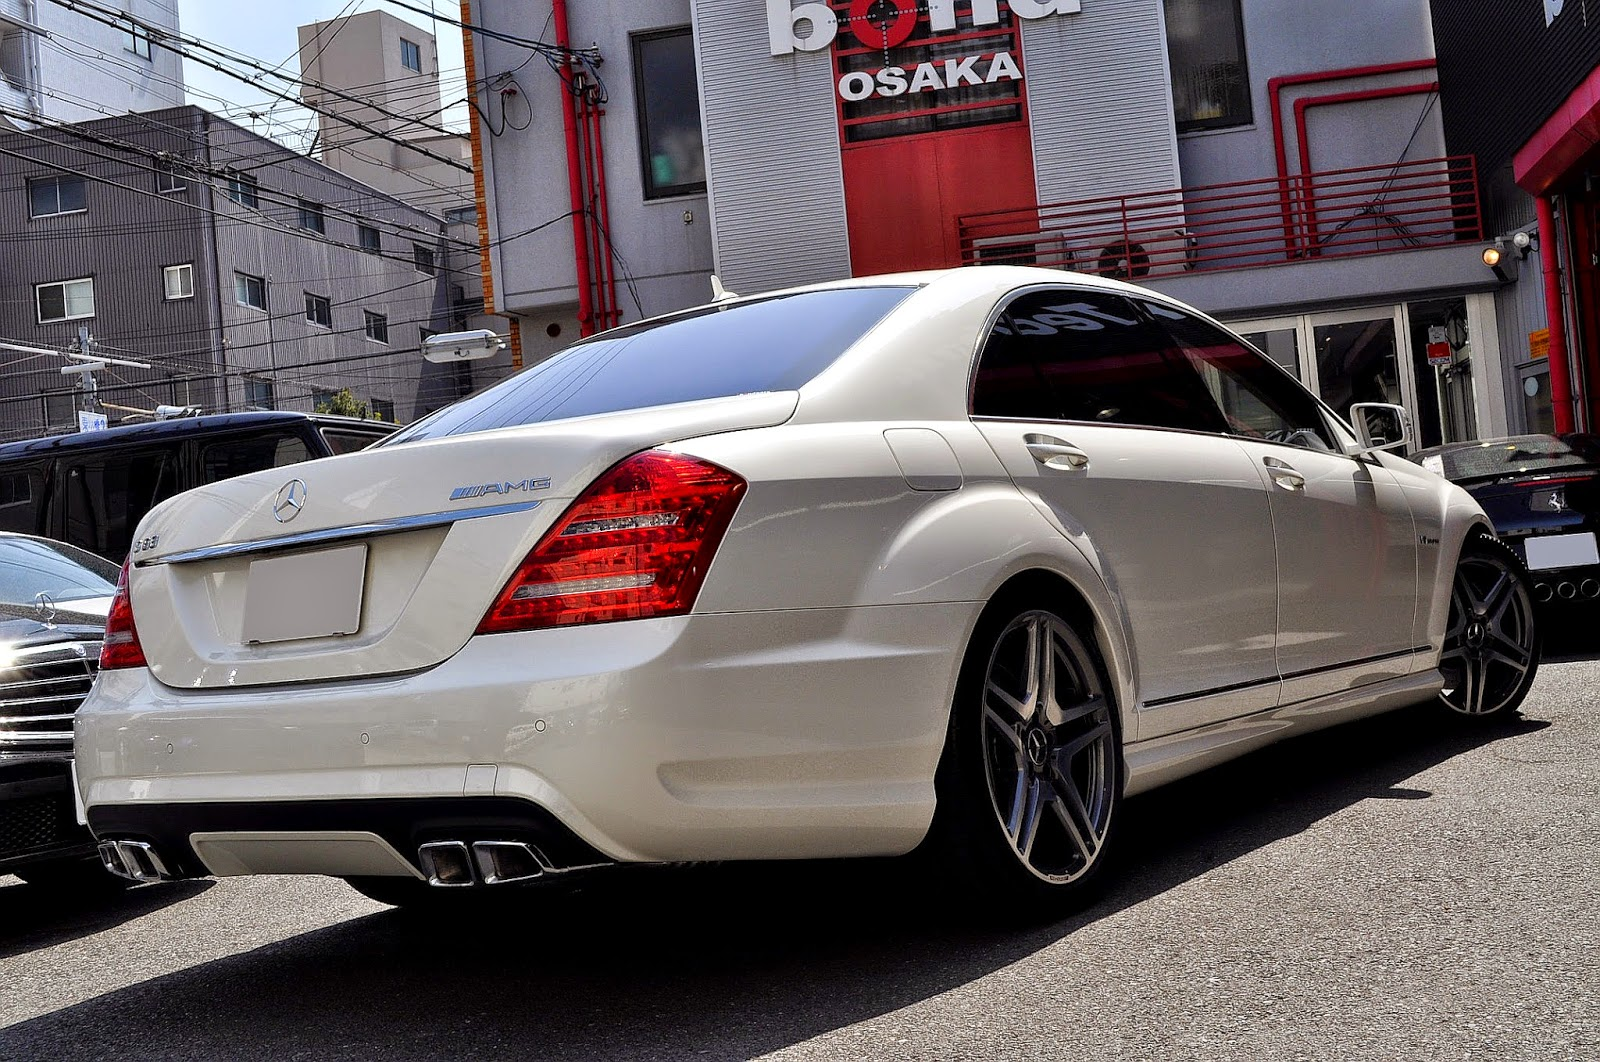 Mercedes Benz W221 S63 Amg White By Bond Tekhnik Benztuning